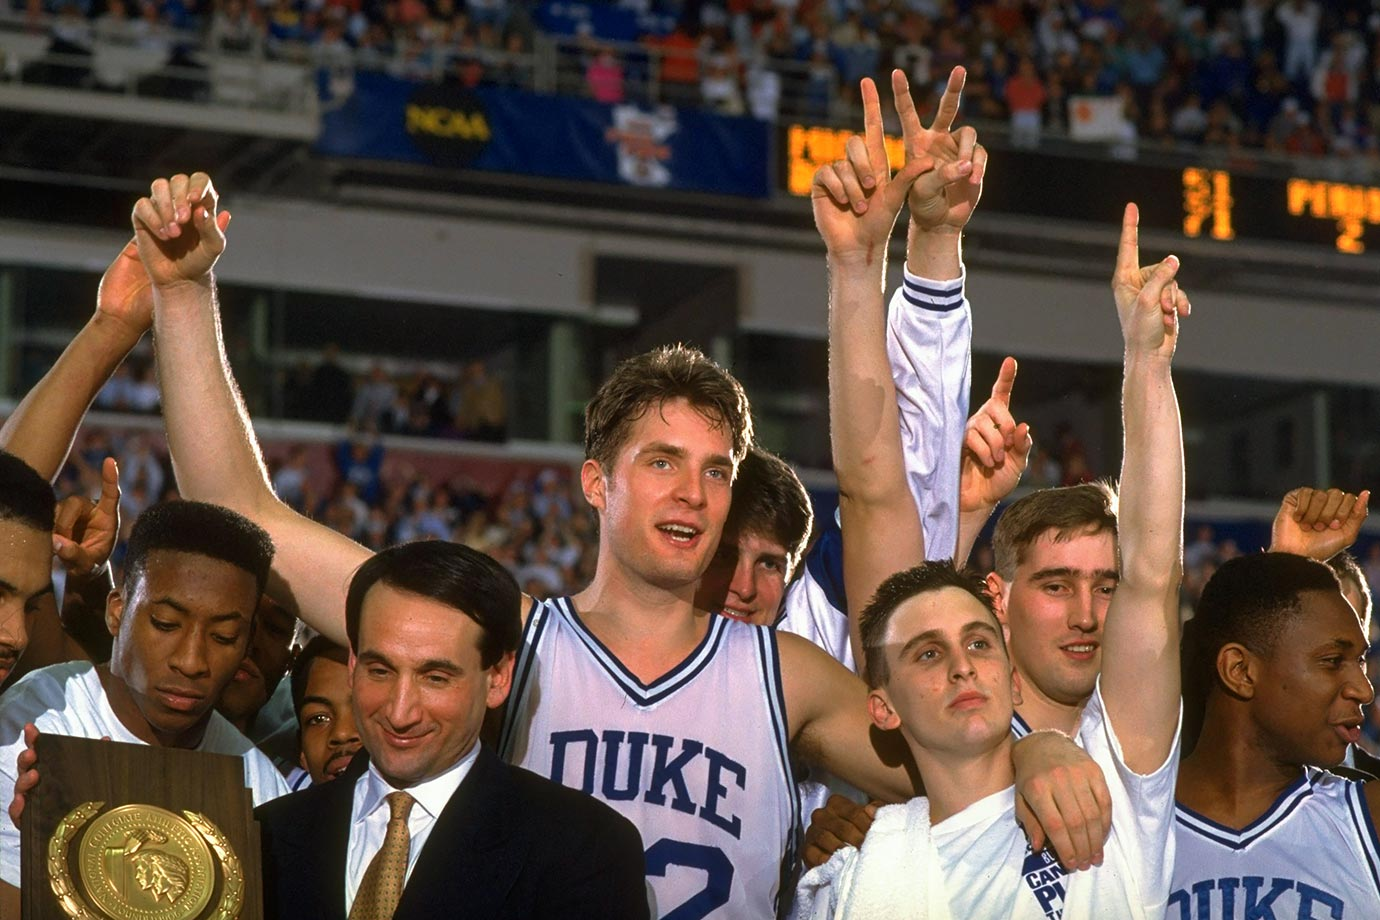 The only player to start in four consecutive Final Four games, Laettner was the spark for a run of incredible Duke teams. After losing in the Final Four and the national championship game in Laettner's first two seasons, the Blue Devils won back-to-back national titles. Laettner carries the unusual distinction of hitting two game-winning buzzer beaters in the 1990 and '92 regional finals. His epic game-winner in the '92 regional final against Kentucky capped off a perfect performance in which he made all 10 of his field goals and all 10 of his free throws. He is the career-leading scorer in tournament history (407 points), but perhaps the most remarkable number of Laettner's career is 23. That's the number of games he played in the NCAA tournament. The maximum for a four-year player is 24.